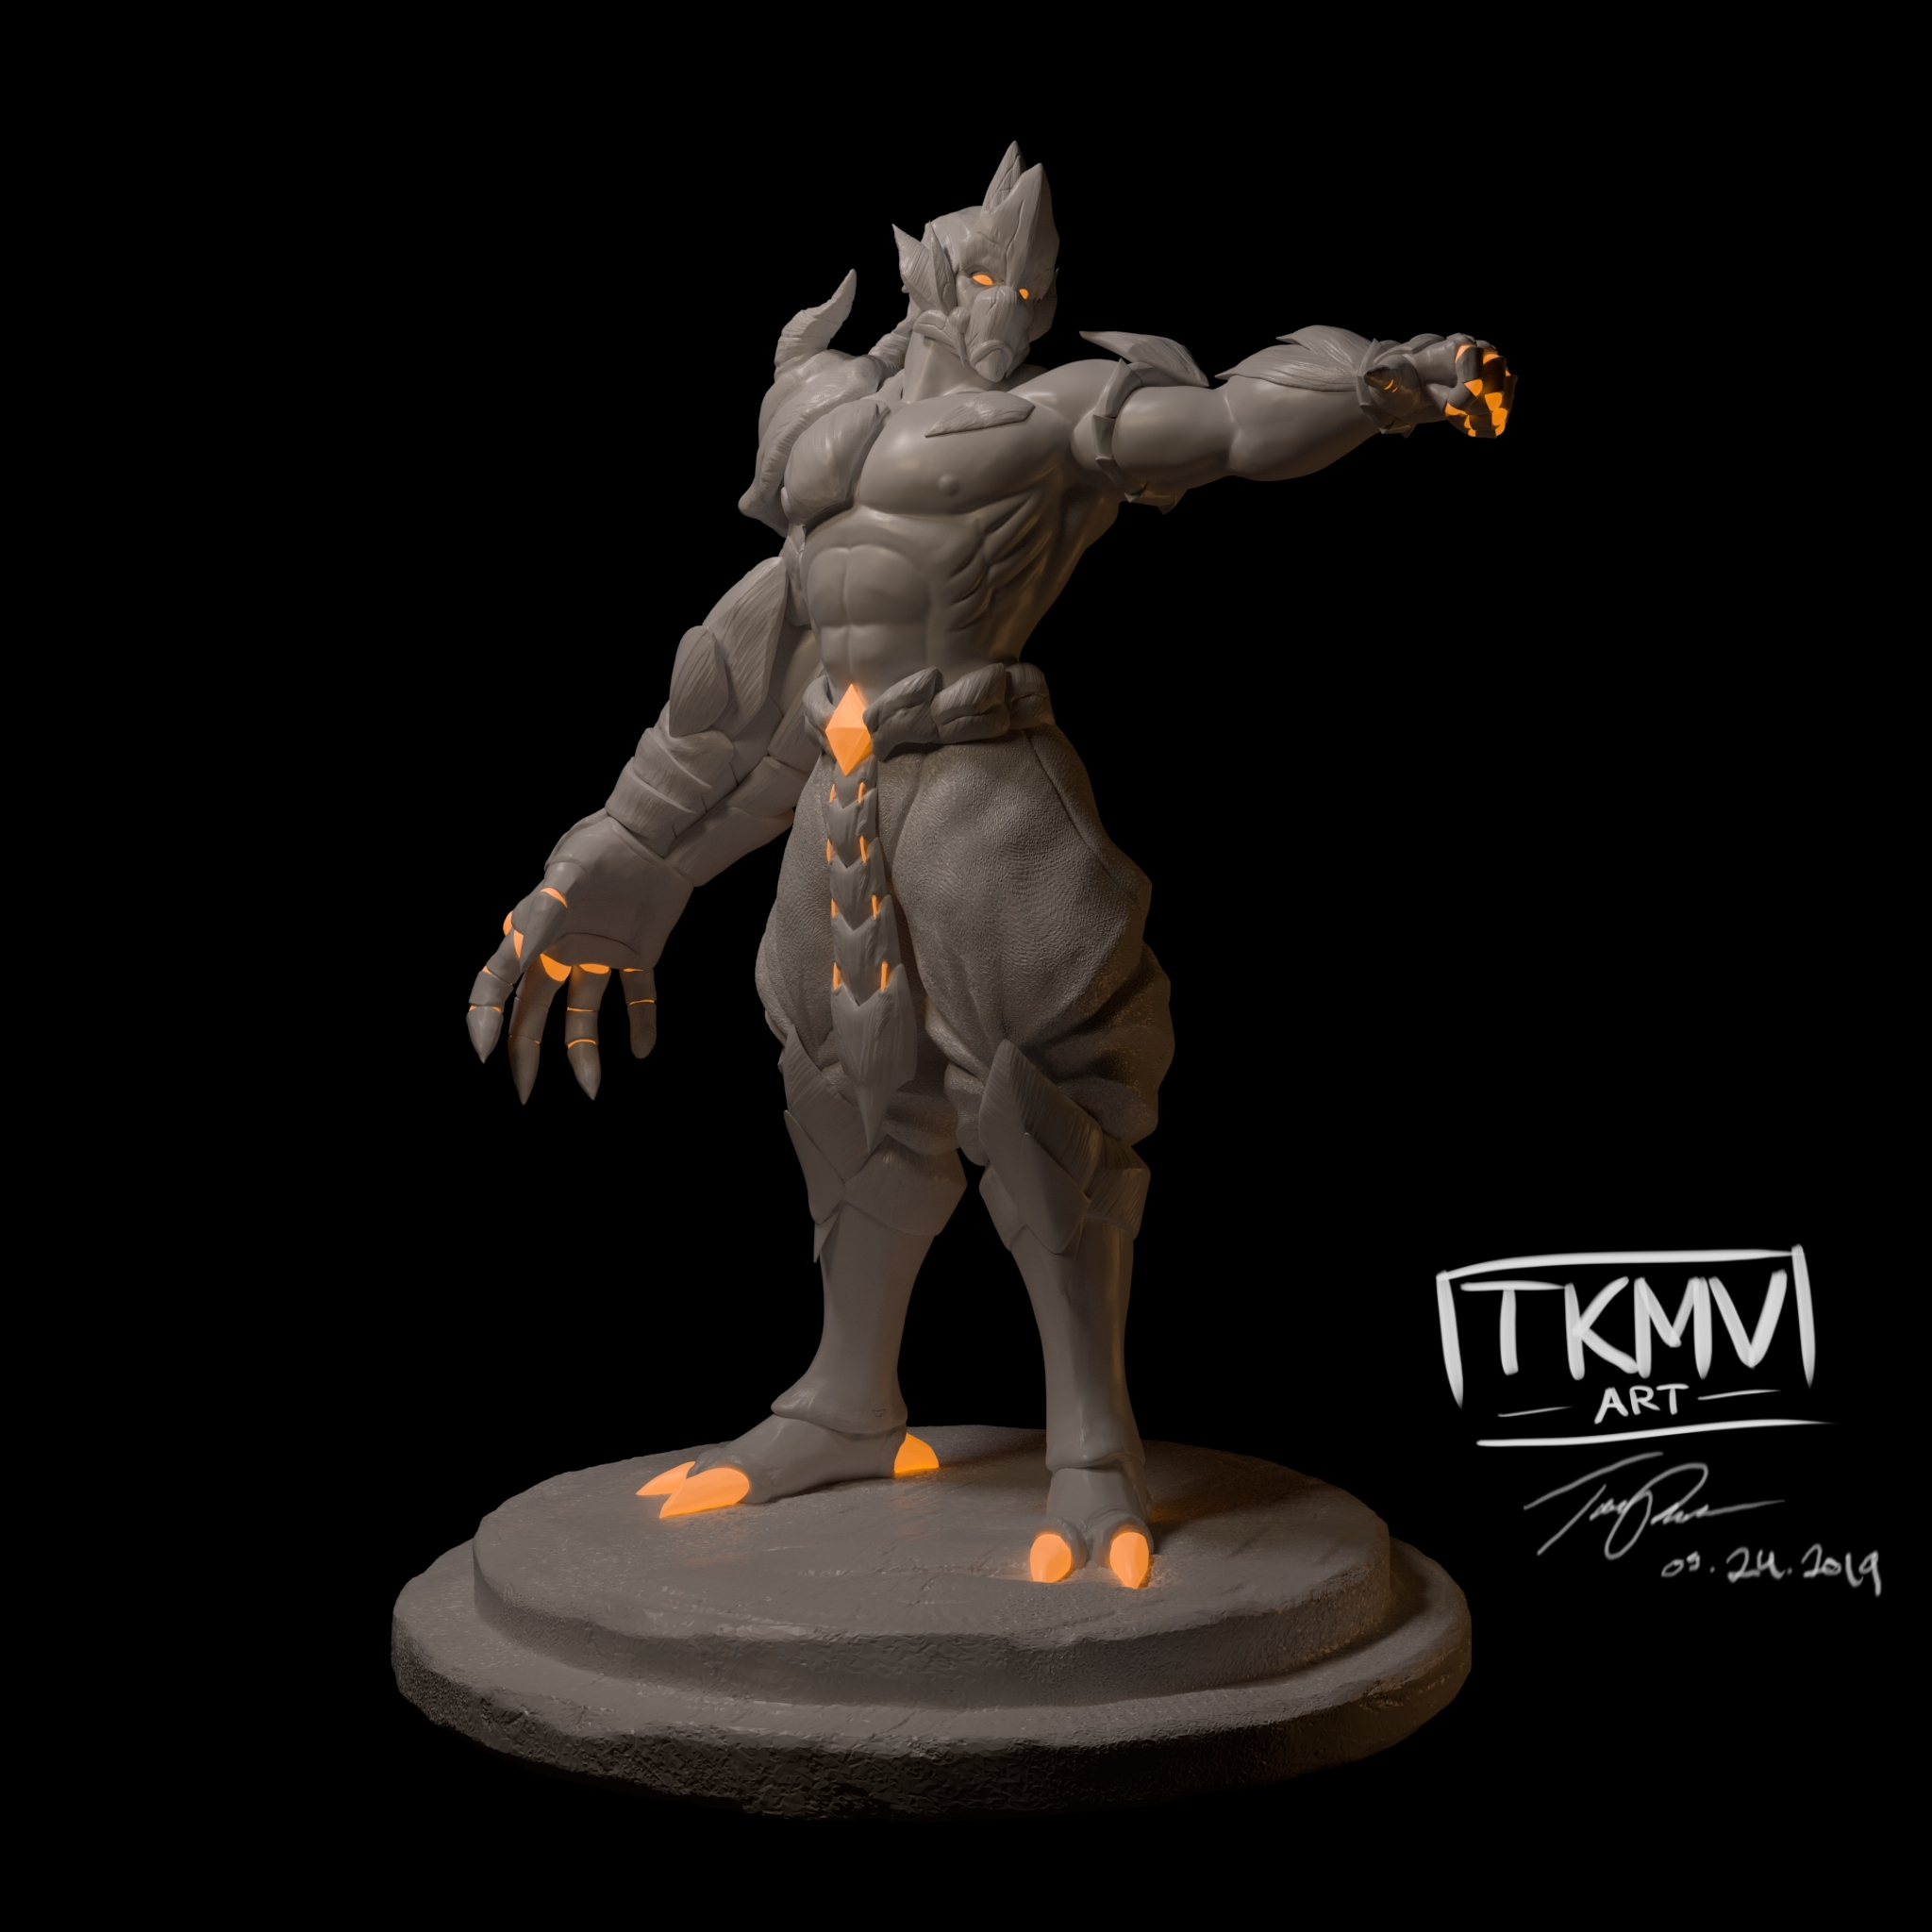 Doomfist Dragon Sculpt